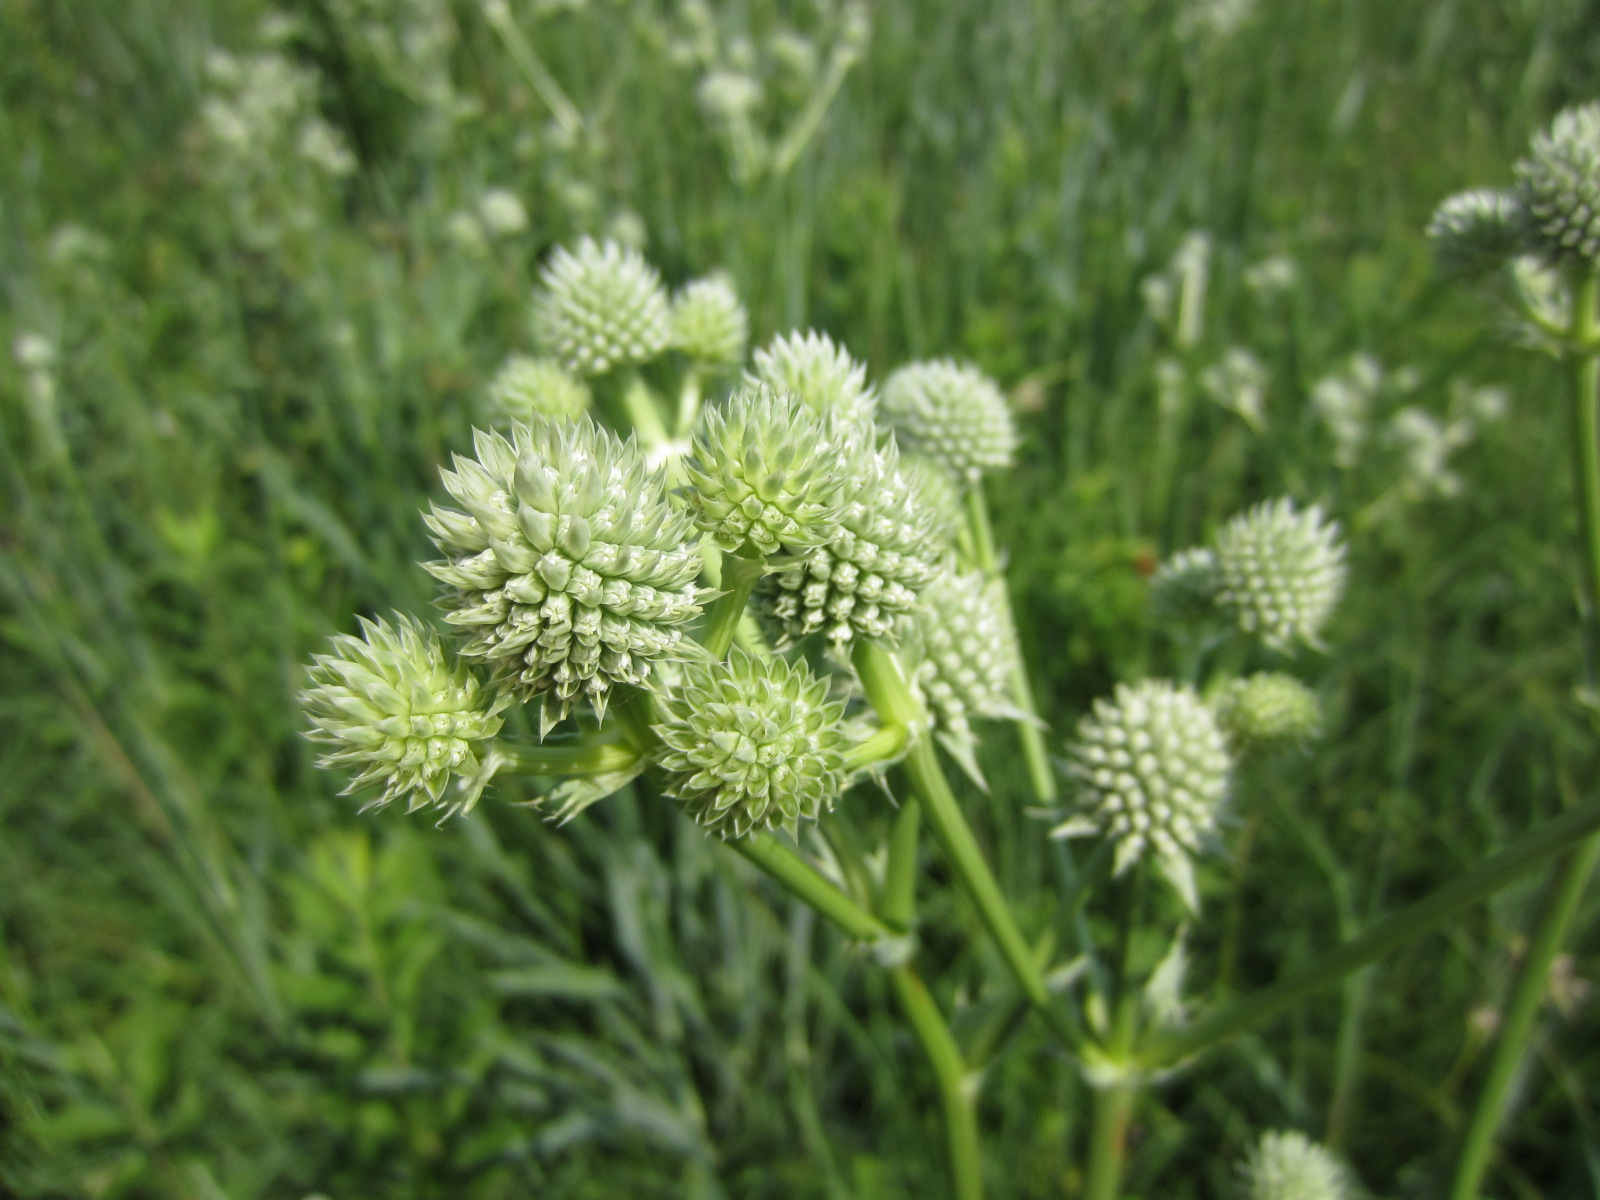 Rattlesnake master, a native plant that thrives in prairie remnants.